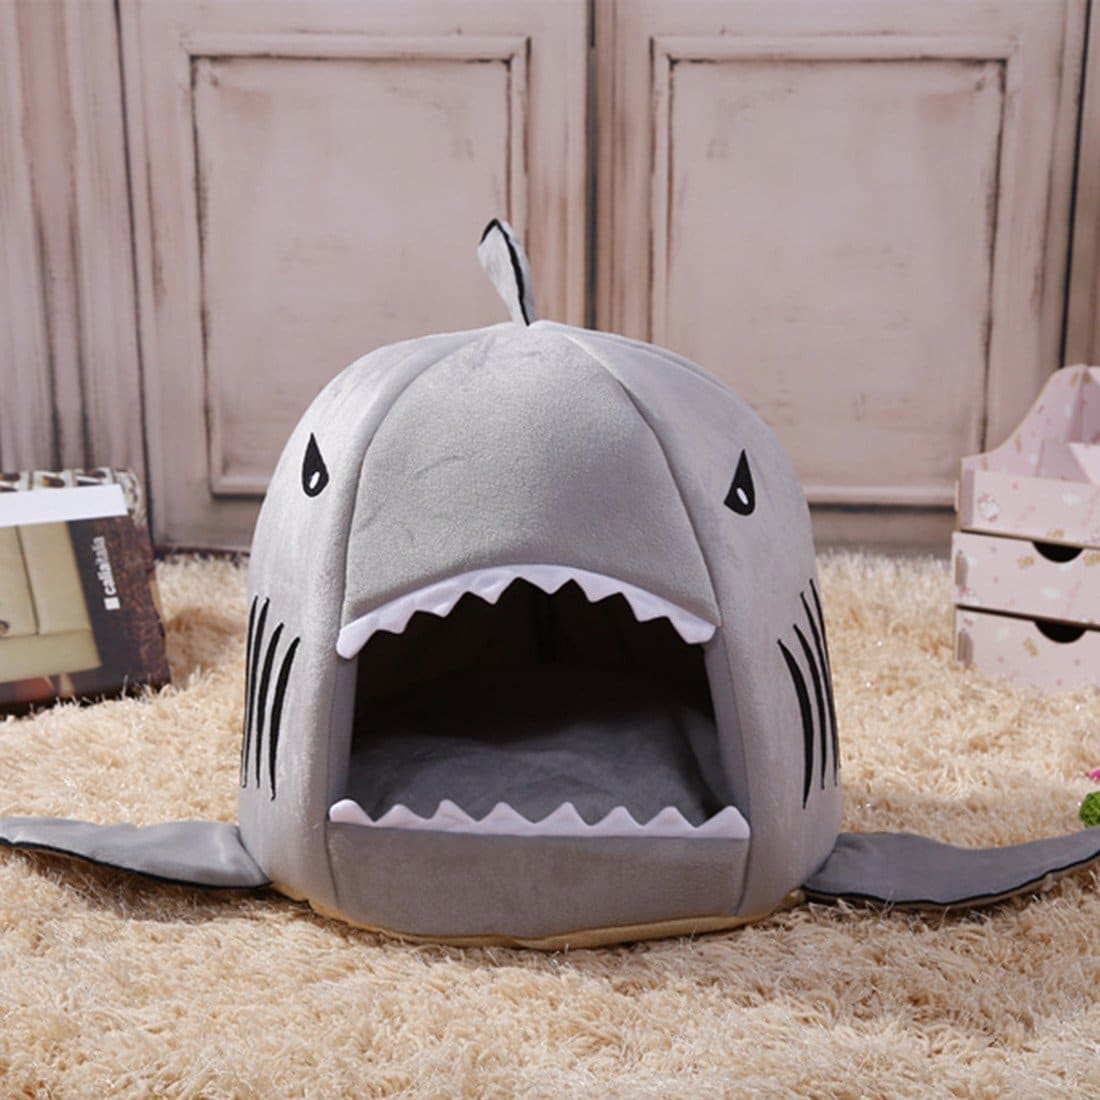 niche requin accessoires et gadgets pour animaux mr etrange. Black Bedroom Furniture Sets. Home Design Ideas